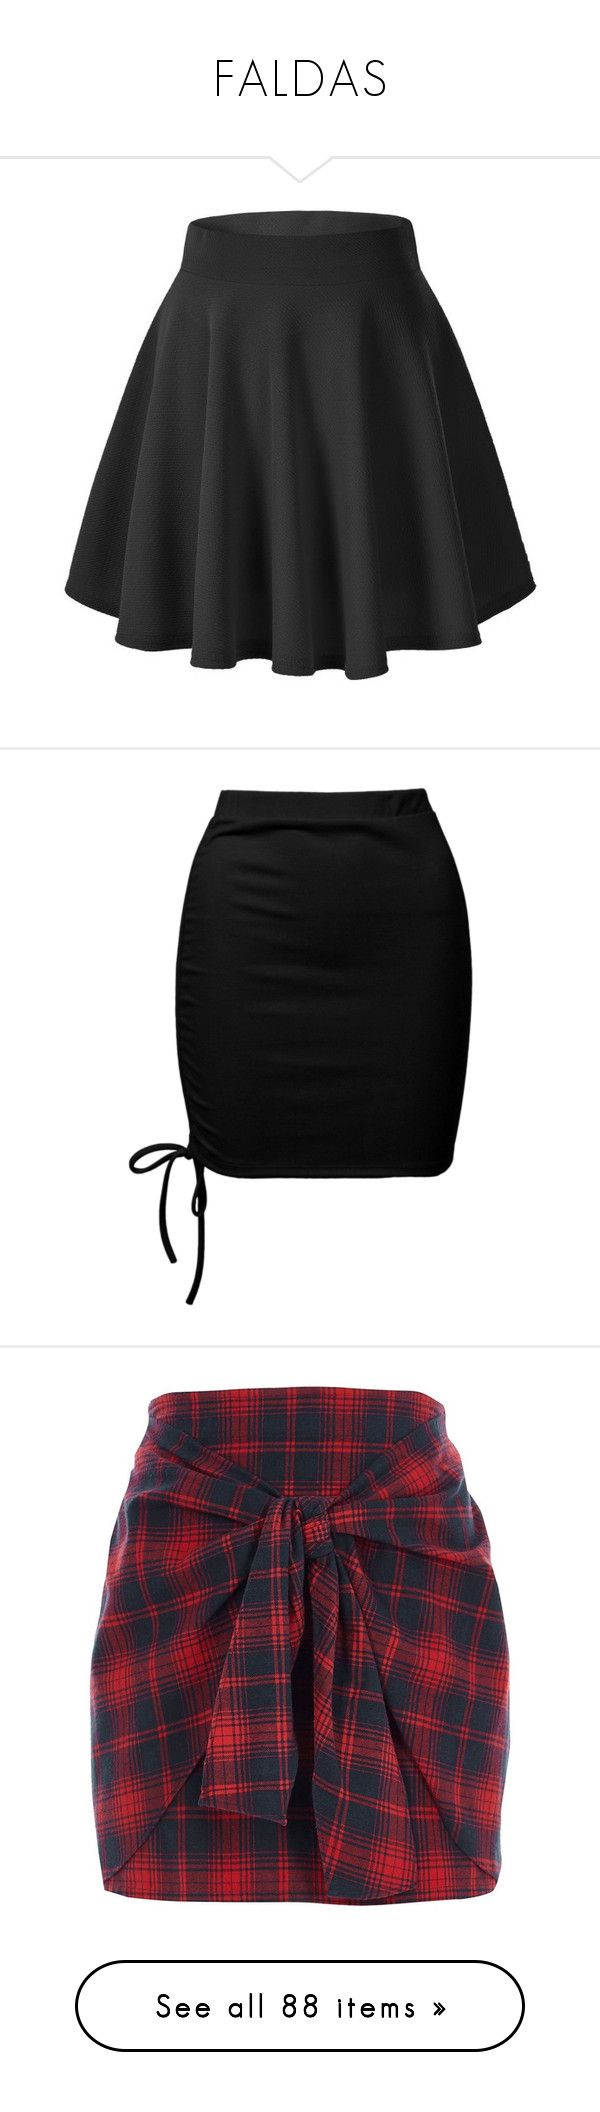 """FALDAS"" by mayra-zulema ❤ liked on Polyvore featuring skirts, mini skirts, bottoms, pants, black, flared mini skirt, flared skater skirt, stretch mini skirt, mini circle skirt and mini skater skirt"